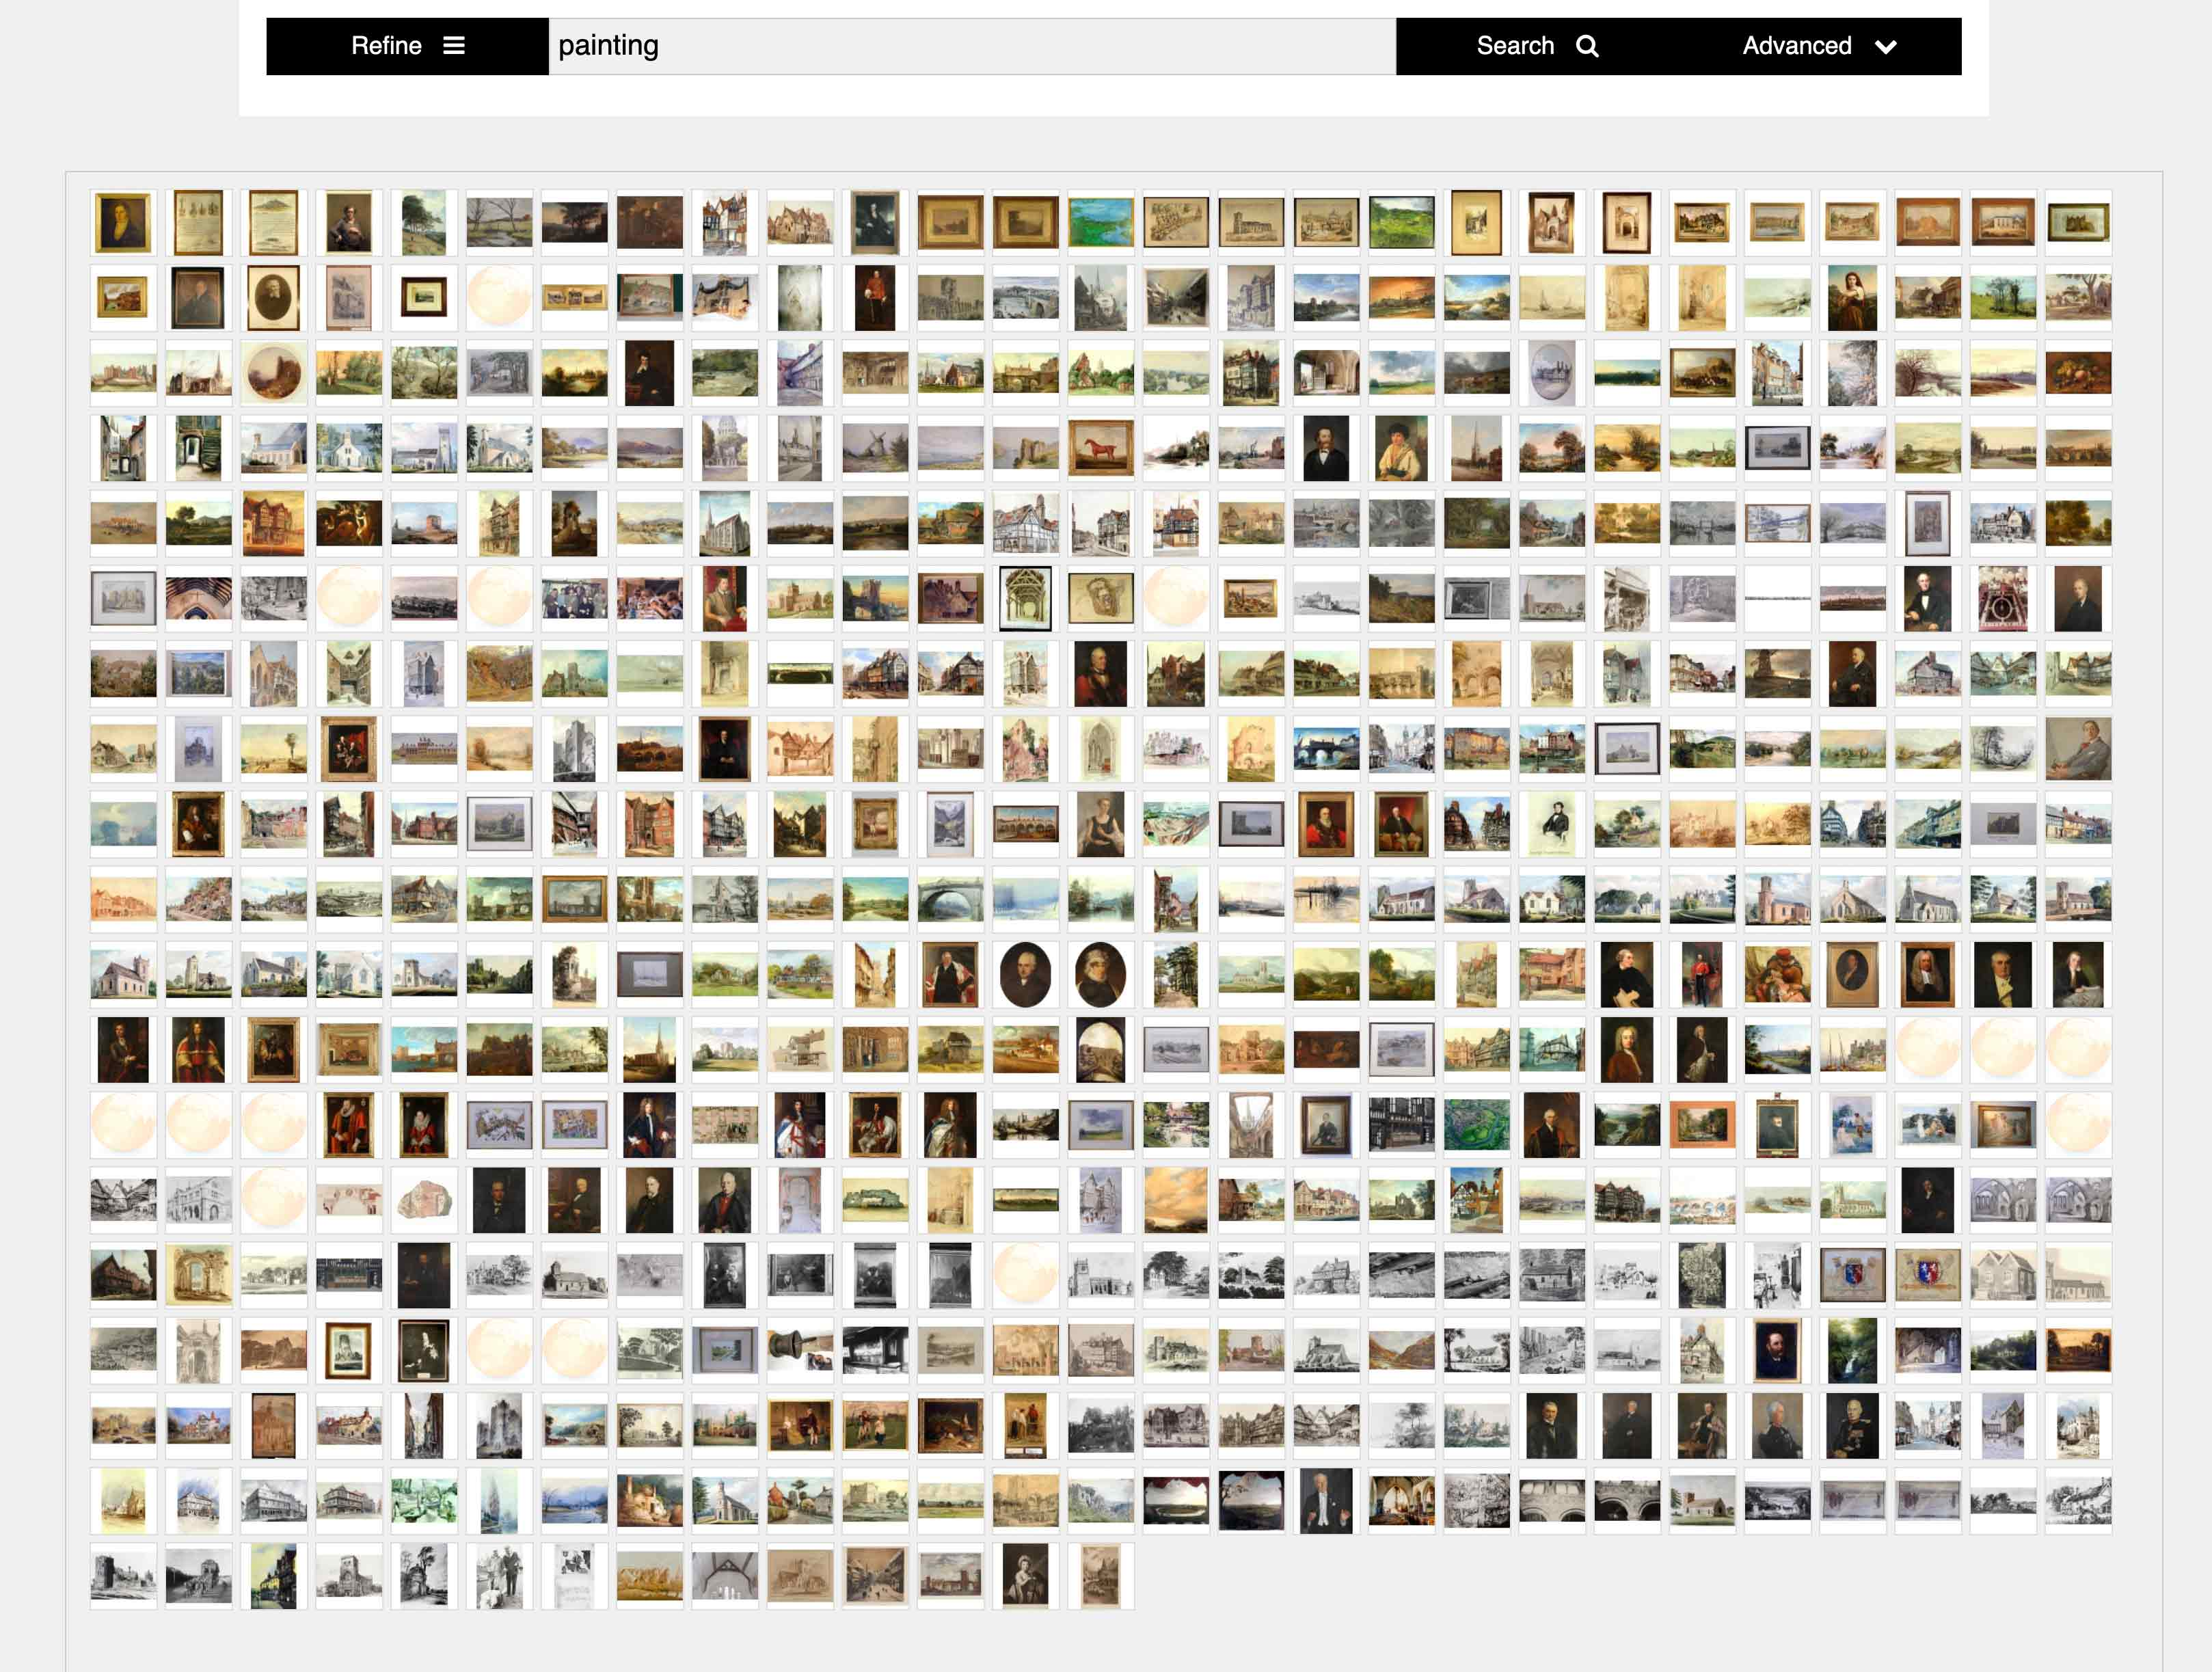 Mosaic image gallery with dynamic search and refinement